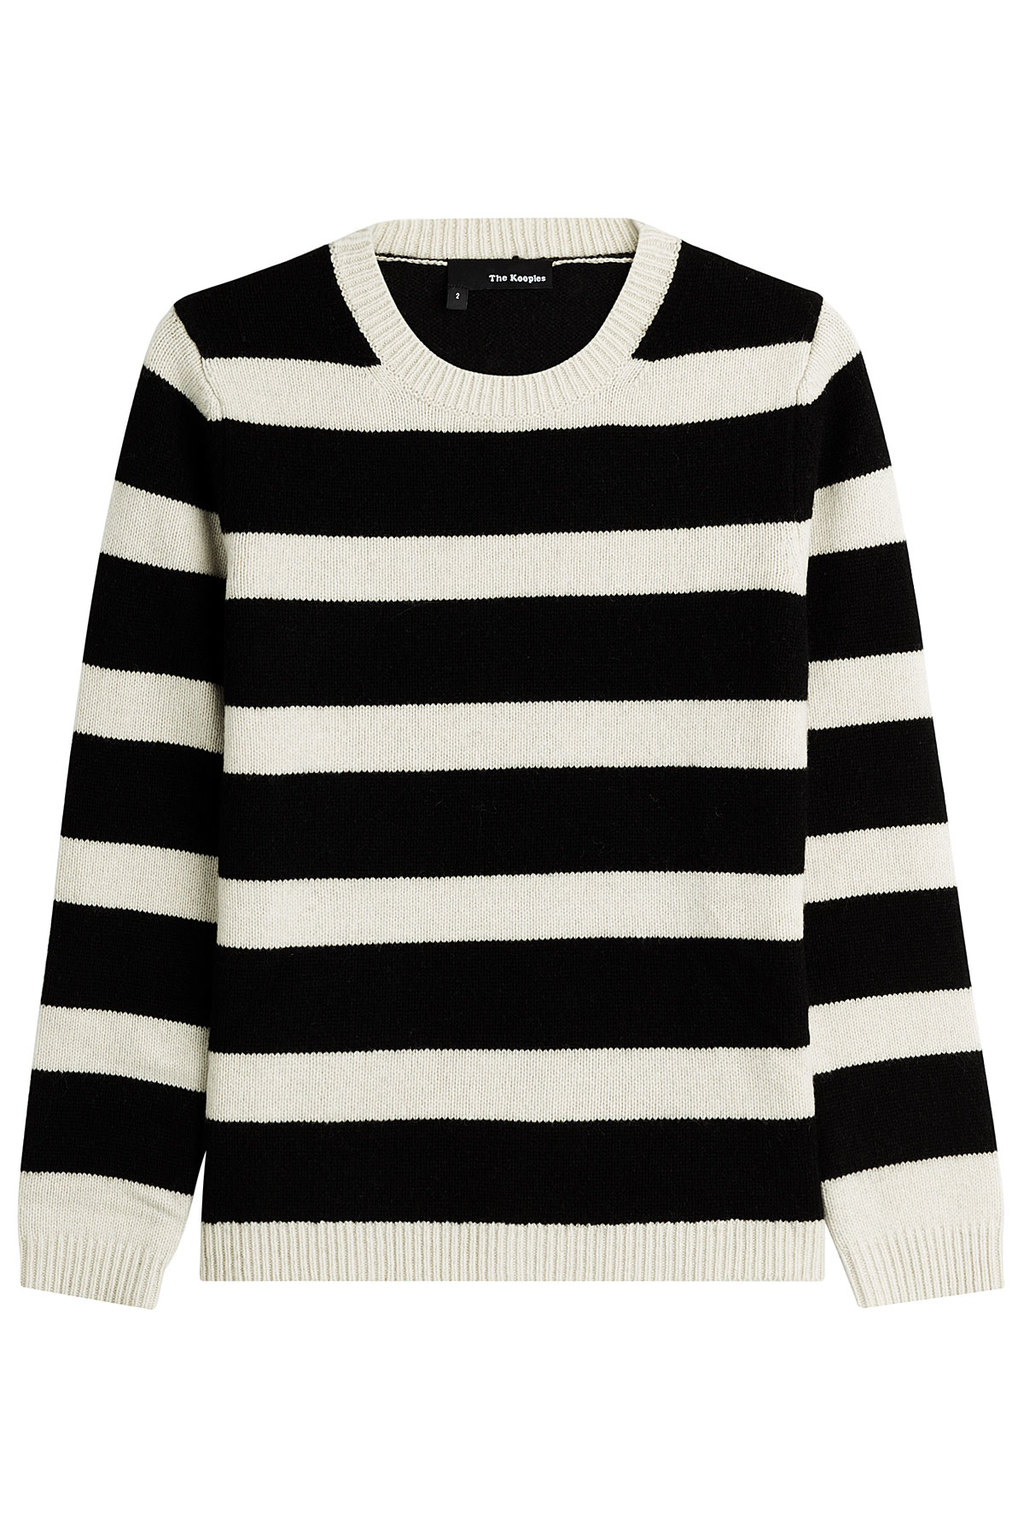 Wool Blend Striped Pullover Stripes - pattern: horizontal stripes; style: standard; secondary colour: white; predominant colour: black; occasions: casual, creative work; length: standard; fibres: wool - mix; fit: standard fit; neckline: crew; sleeve length: long sleeve; sleeve style: standard; texture group: knits/crochet; pattern type: knitted - fine stitch; pattern size: standard; season: a/w 2015